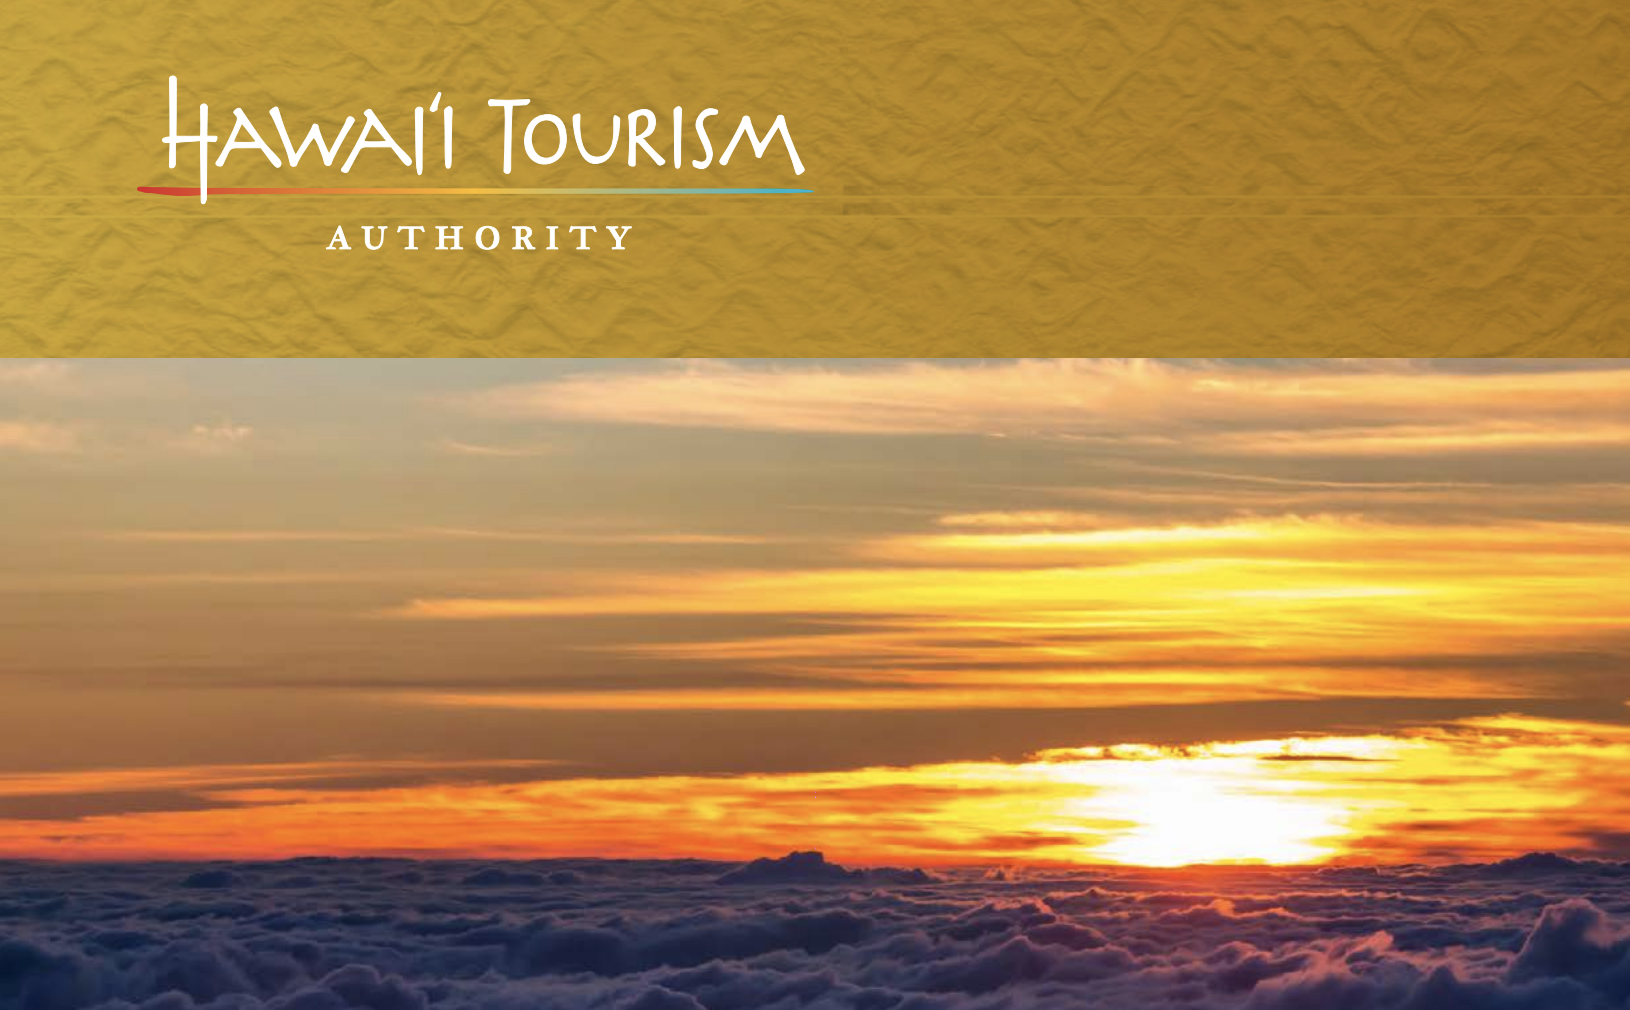 Go West? Four Job Openings at Hawaii Tourism Authority